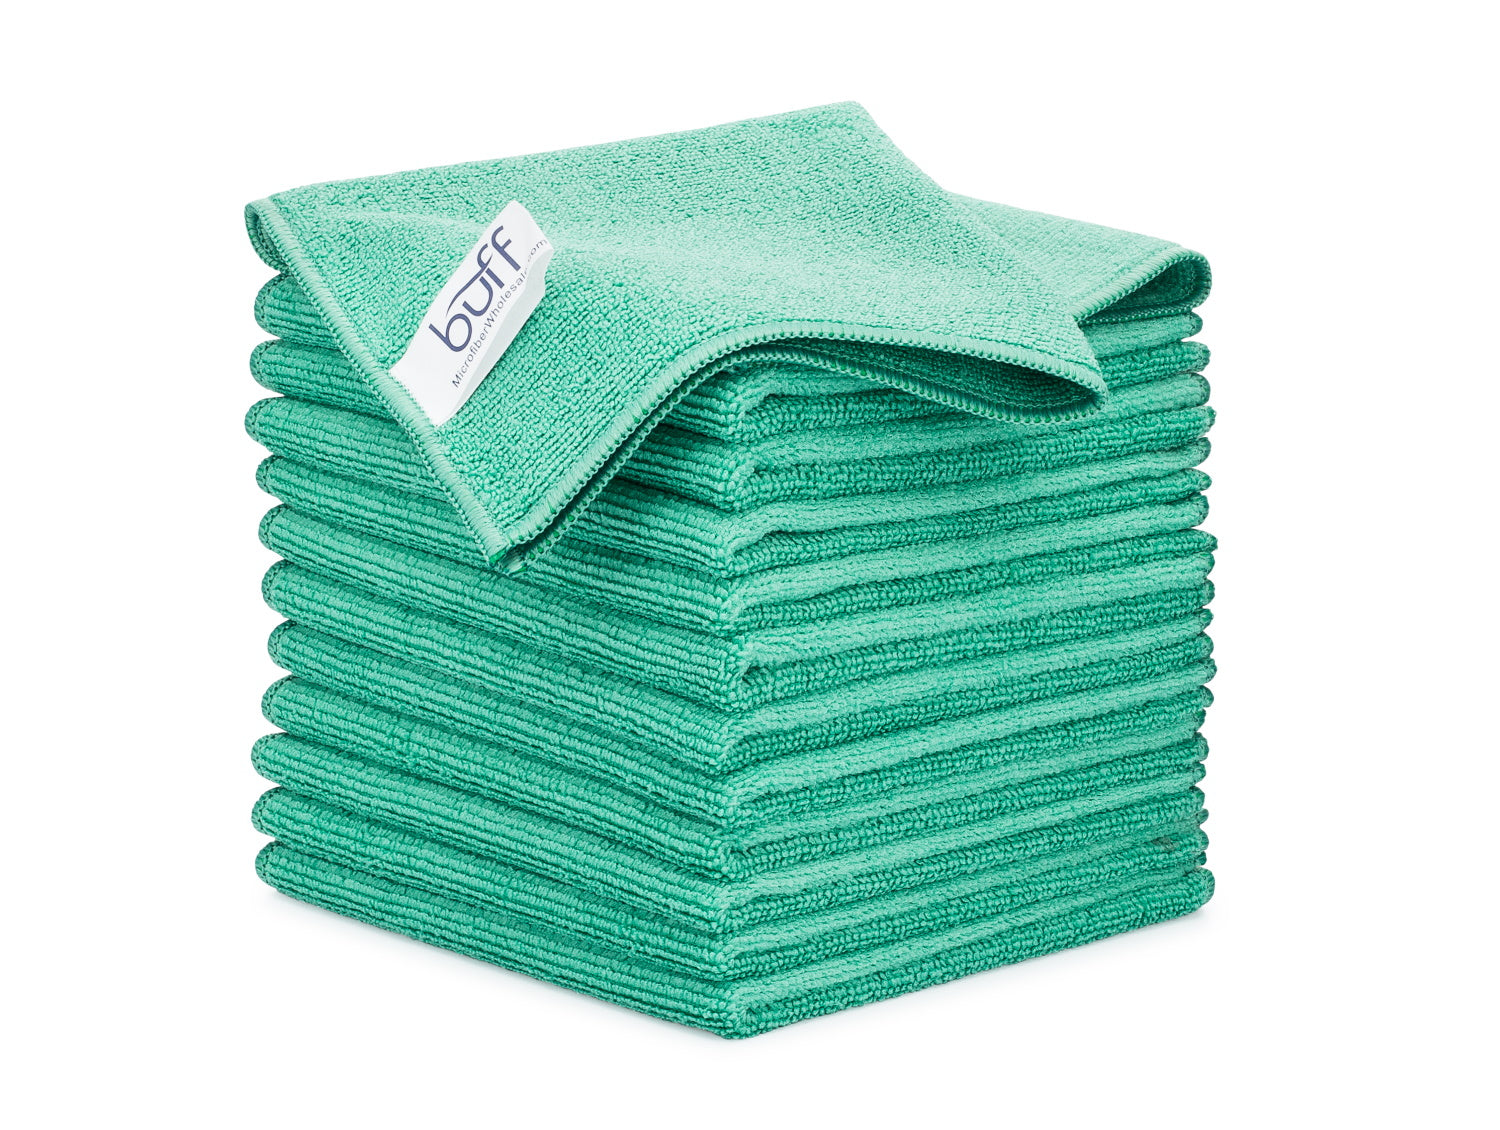 Green Microfiber Cleaning Cloths 12 Pack